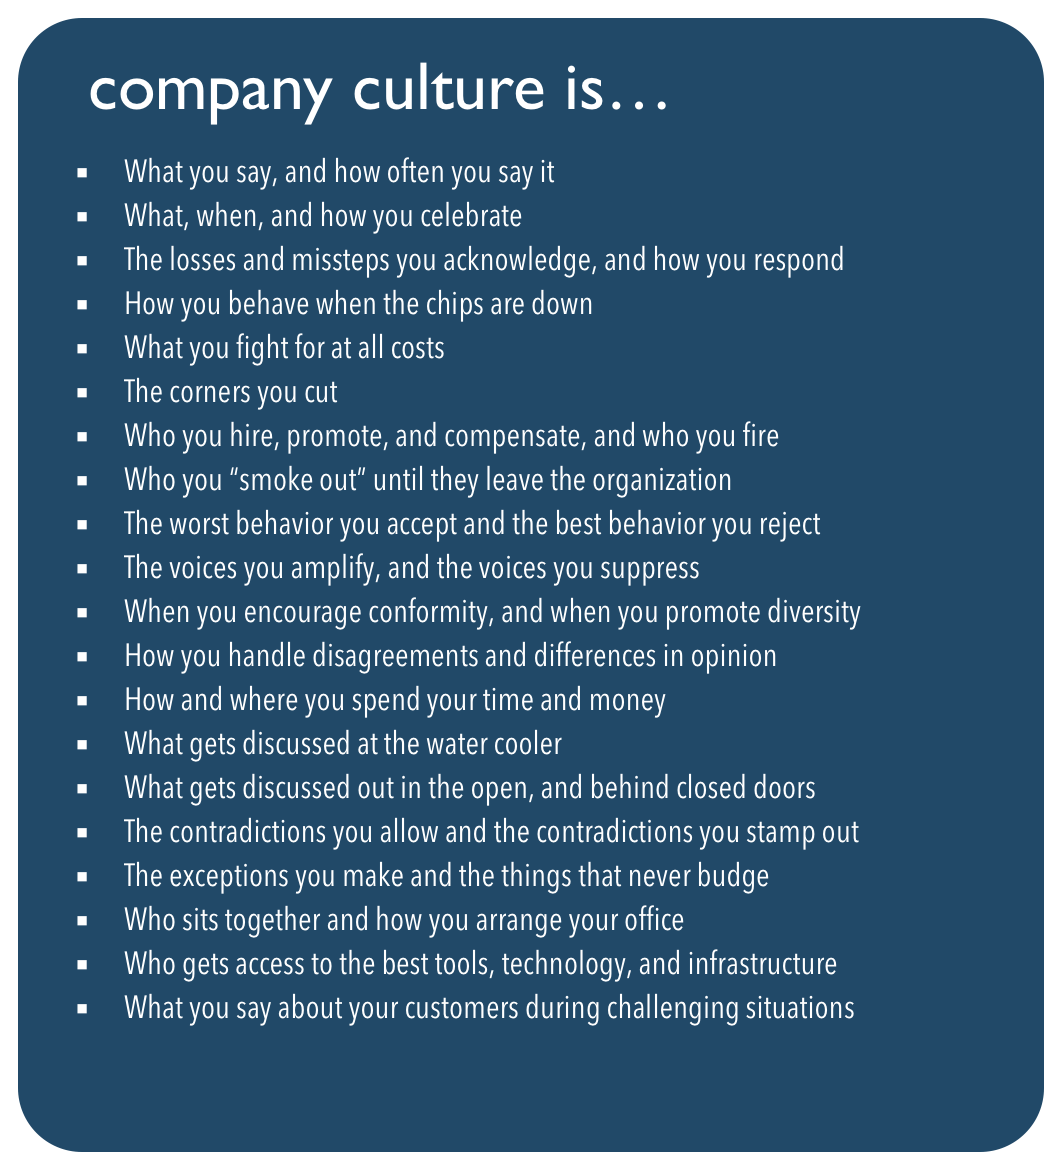 Company culture is ... via @johncutlefish https://t.co/MghoKVeVTW